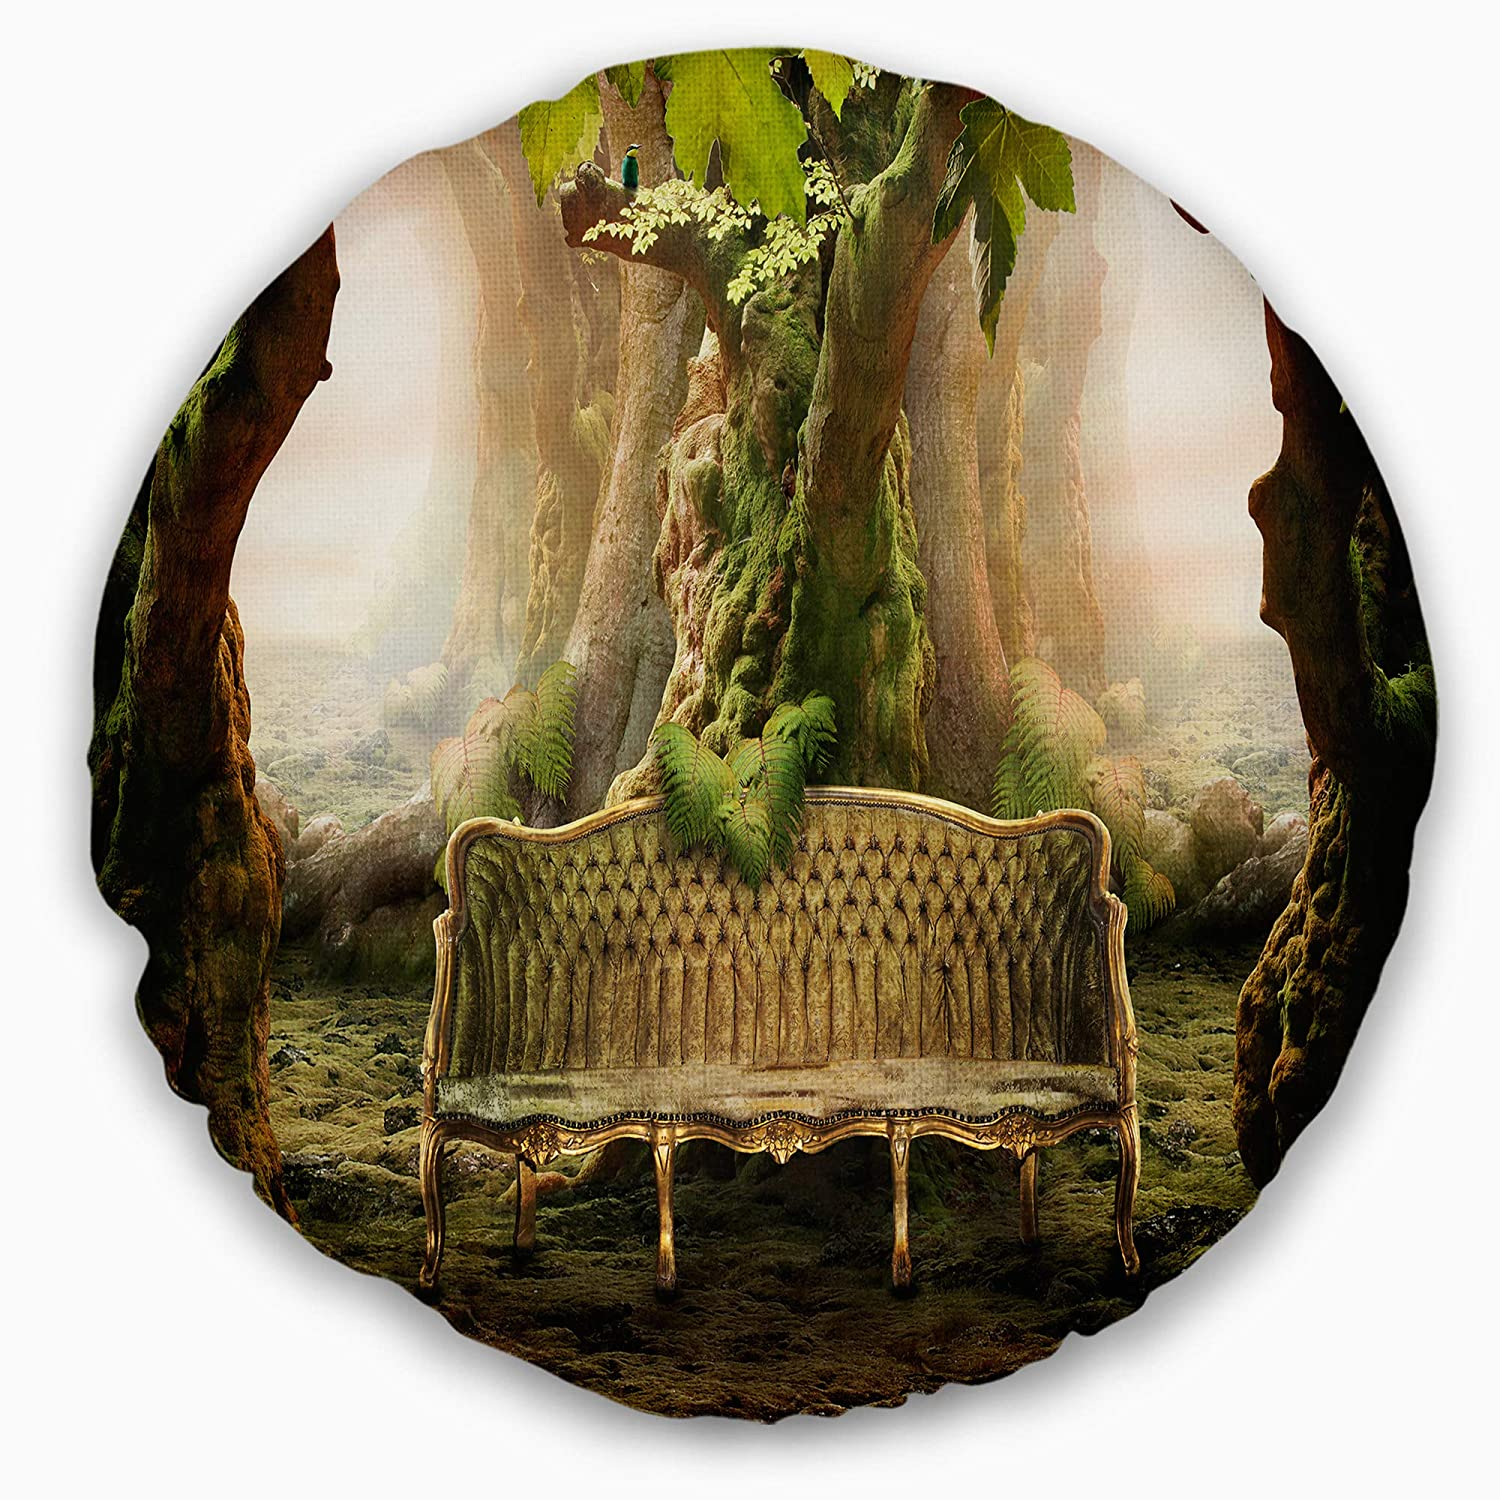 Designart CU9461-20-20-C Romantic Seat in Deep Forest' Landscape Photography Round Cushion Cover for Living Room, Sofa Throw Pillow 20', Insert Printed On Both Side